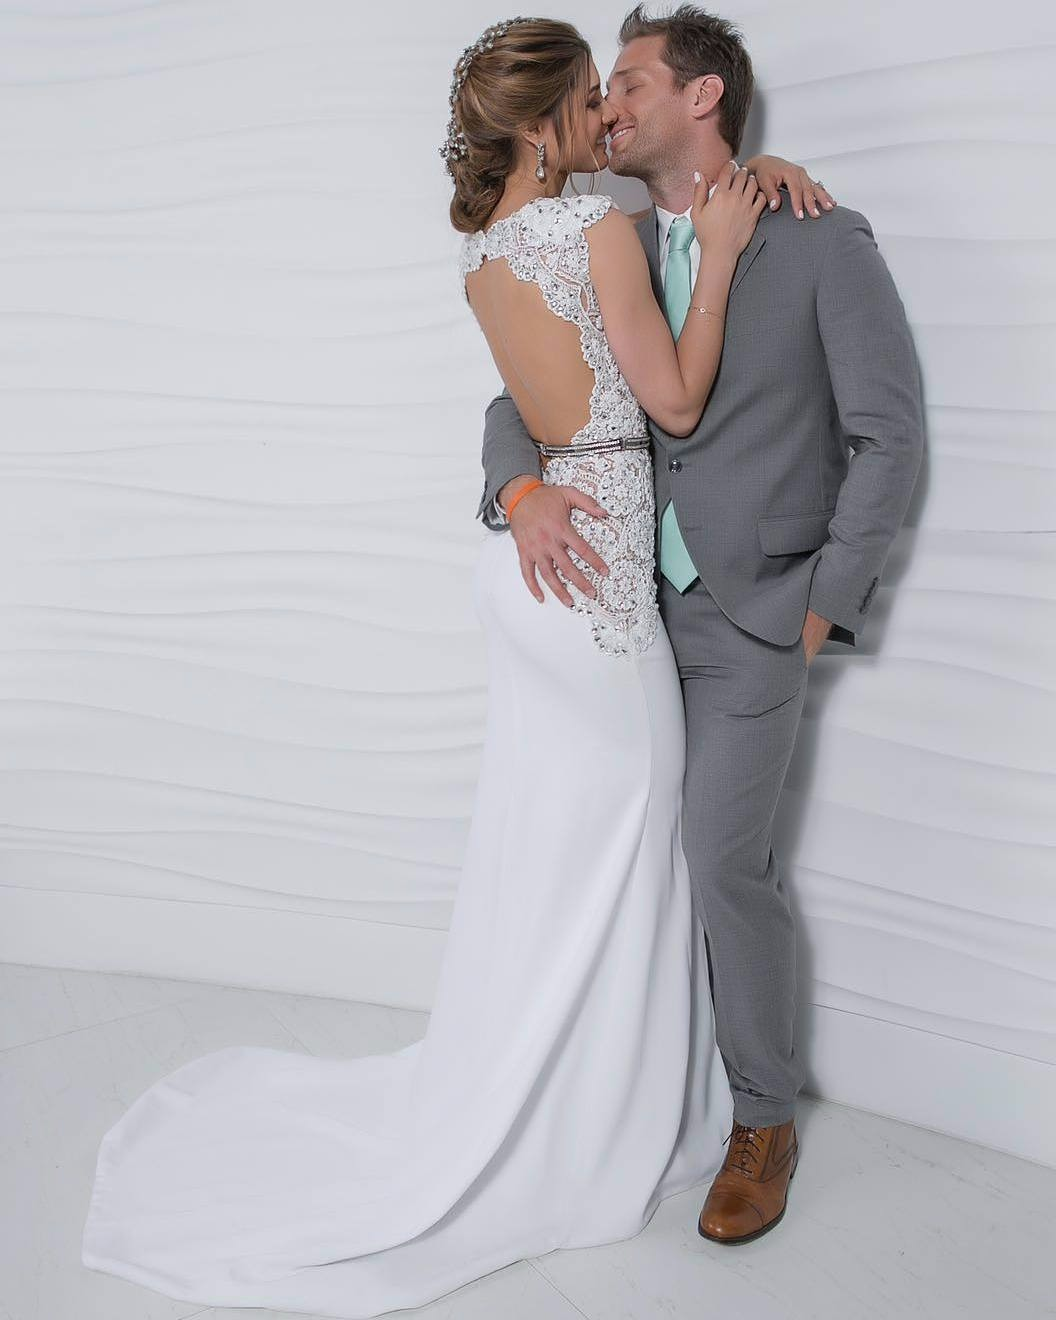 The Bachelor star Juan Pablo and wife Osmariel Villalobos hug after their wedding